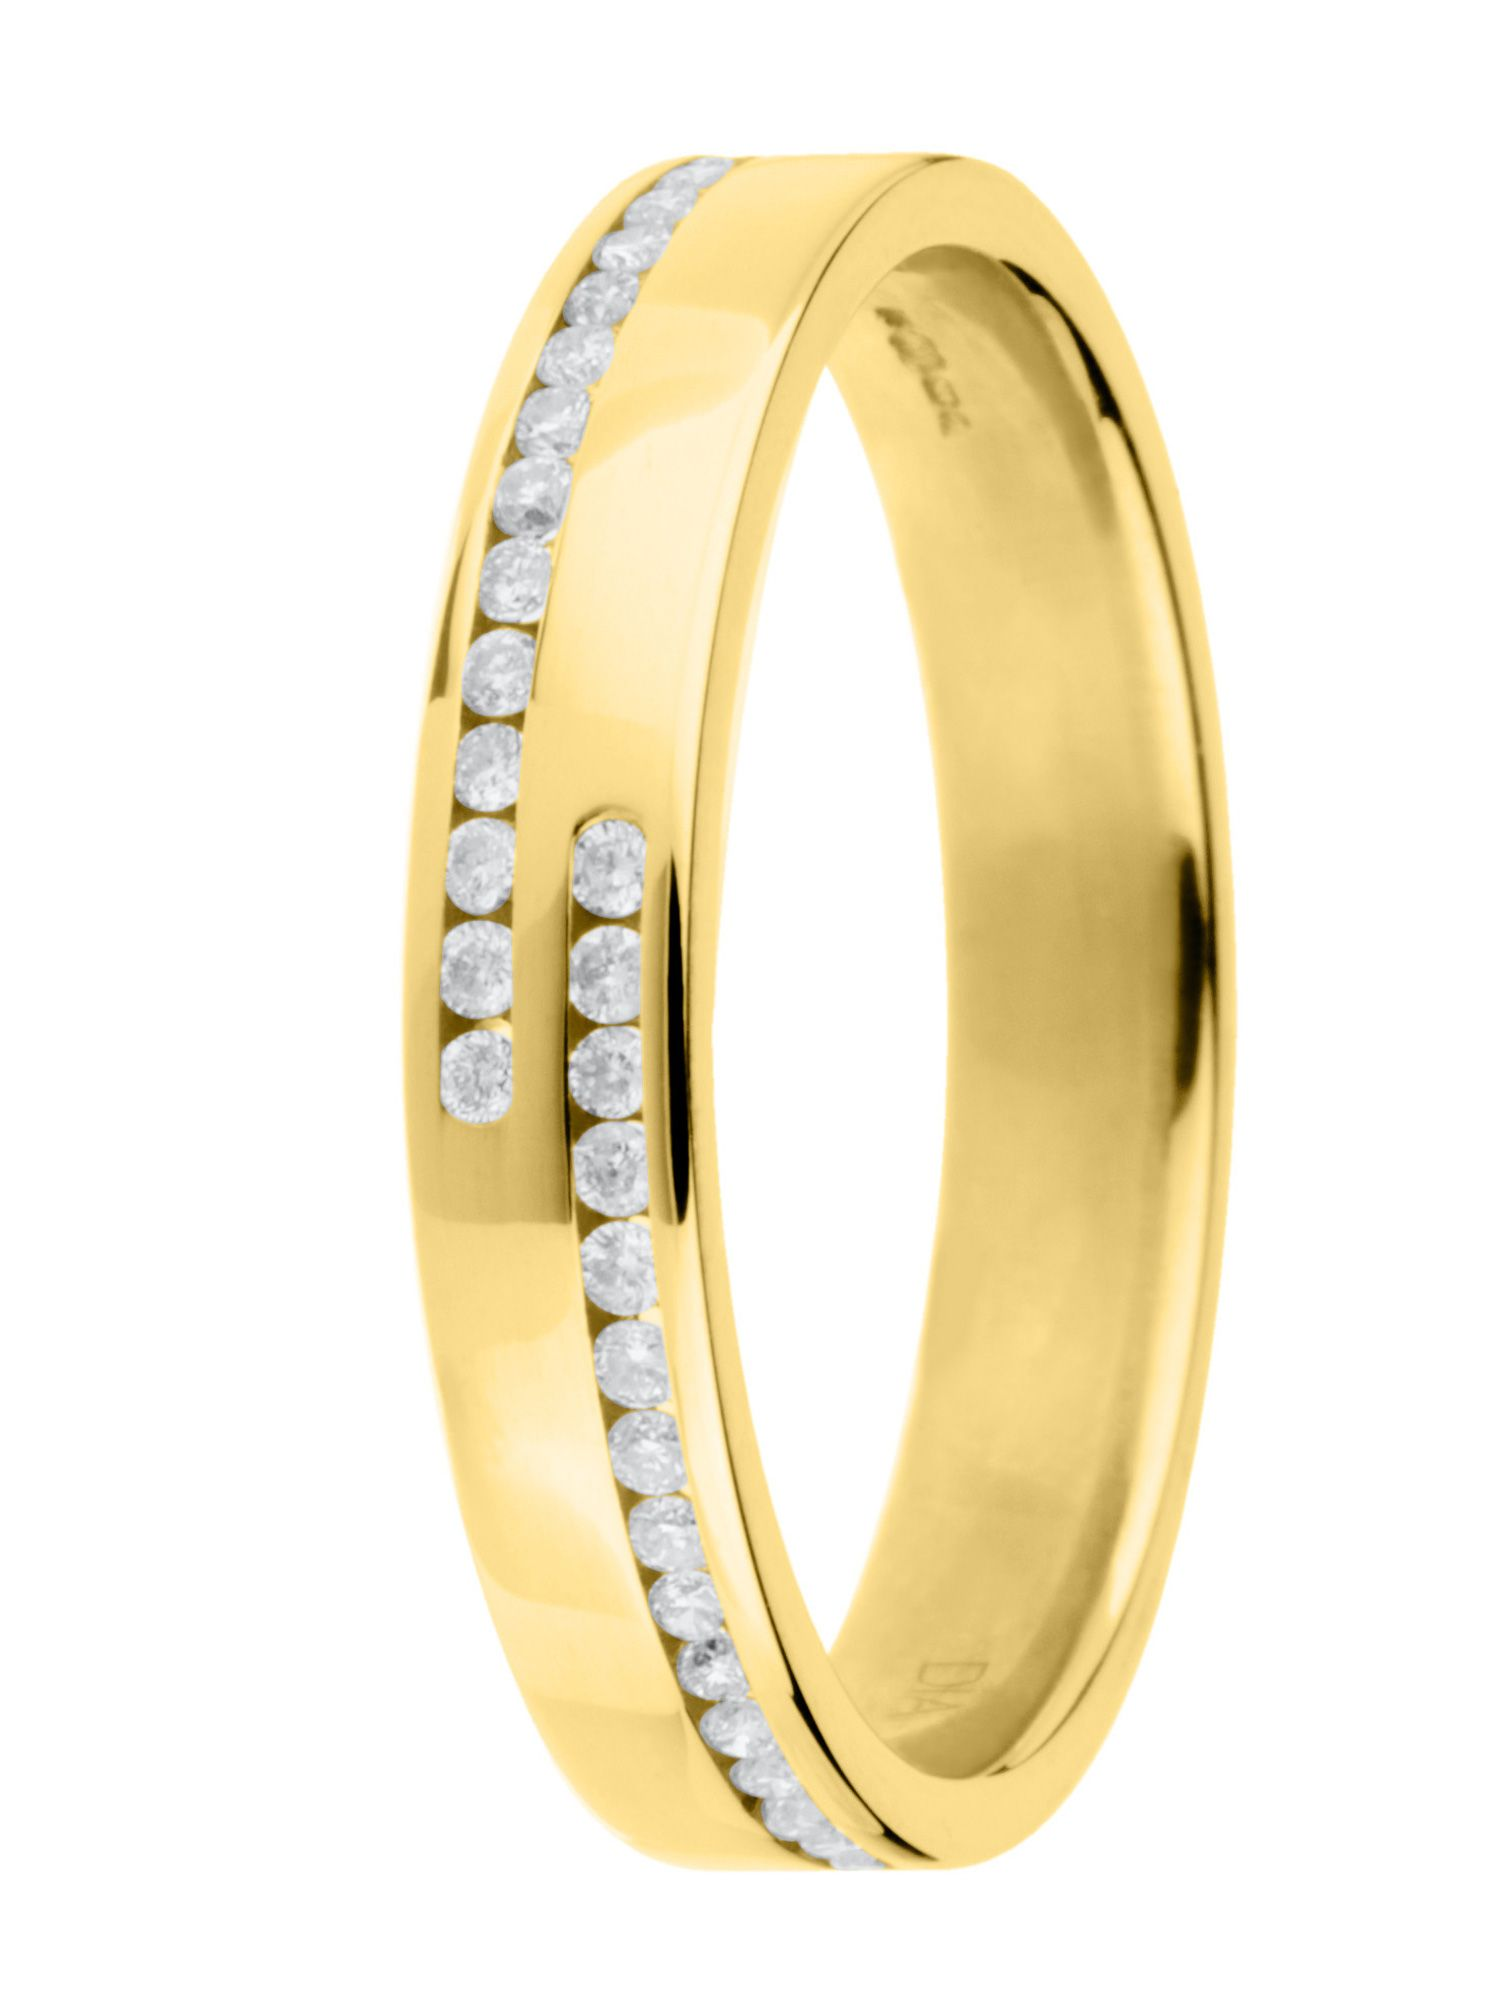 Goldsmiths Brides 18ct gold 0.15ct polished wedding ring, Gold